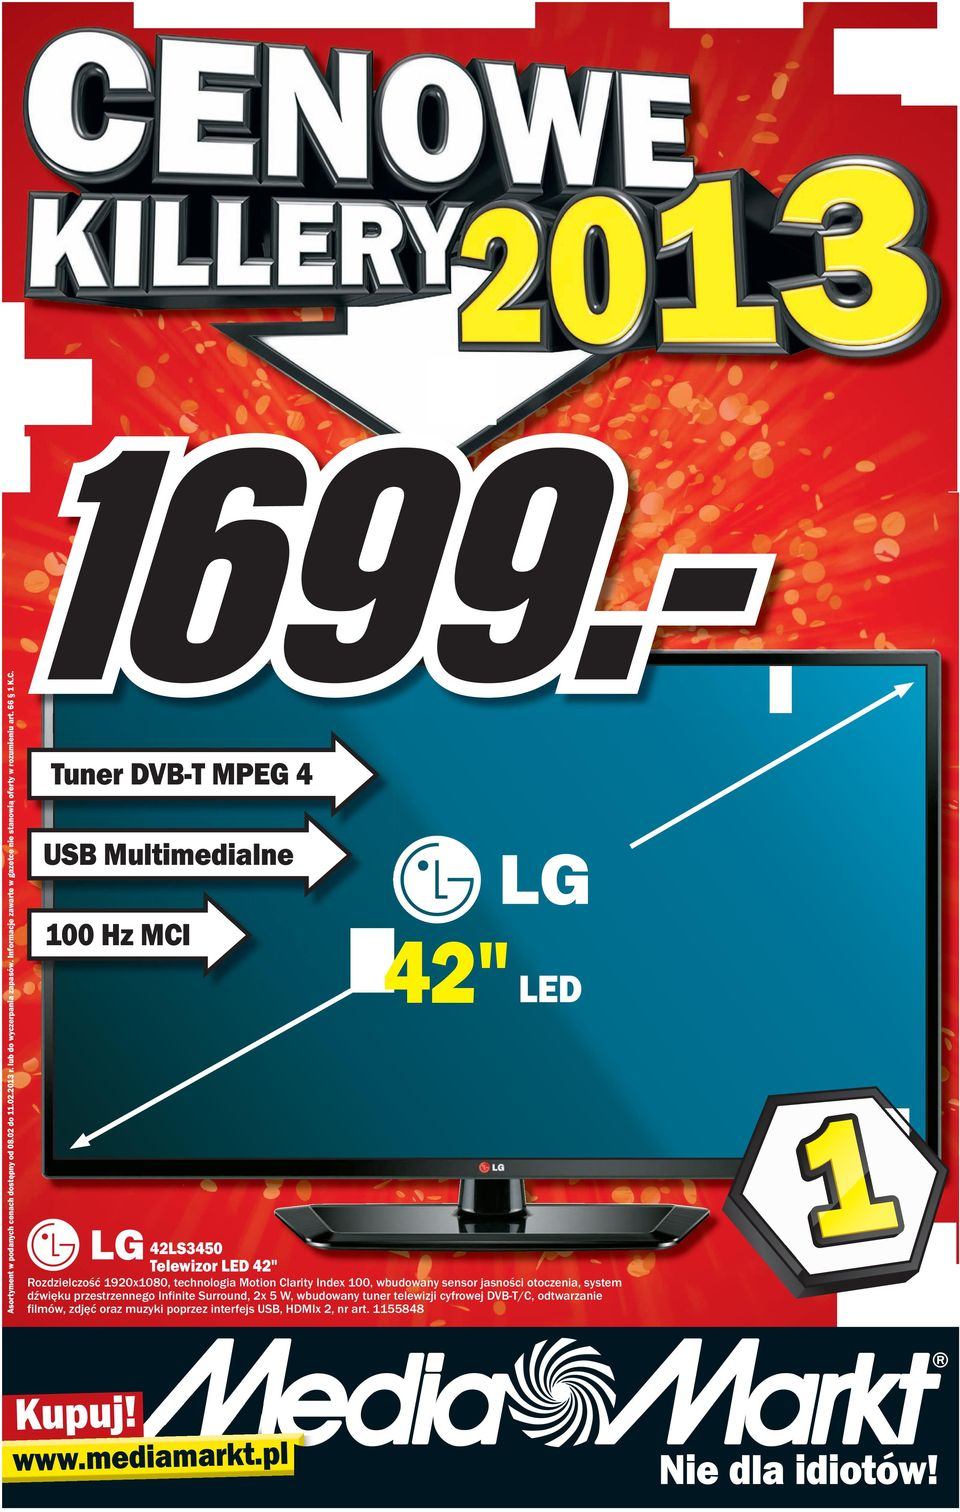 "Tuner DVB-T MPEG 4 USB Multimedialne 100 Hz MCI 42"" LED 42LS3450 Telewizor LED 42"" Rozdzielczość 1920x1080, technologia Motion Clarity Index 100,"